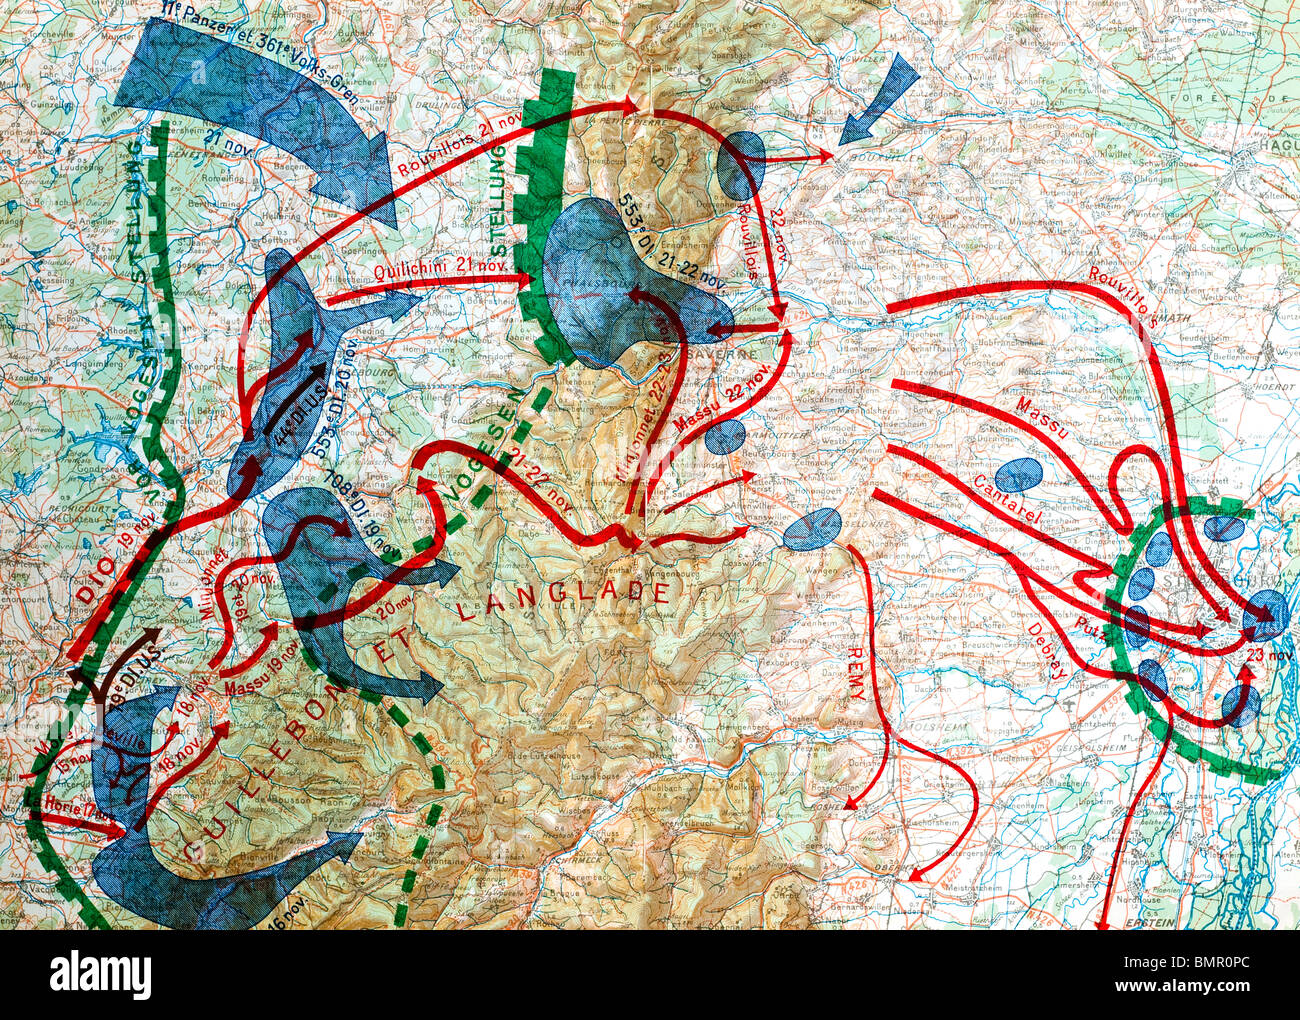 1946 French World War II book map illustration showing Allied army movements around Voges, France and Germany, 1944. - Stock Image